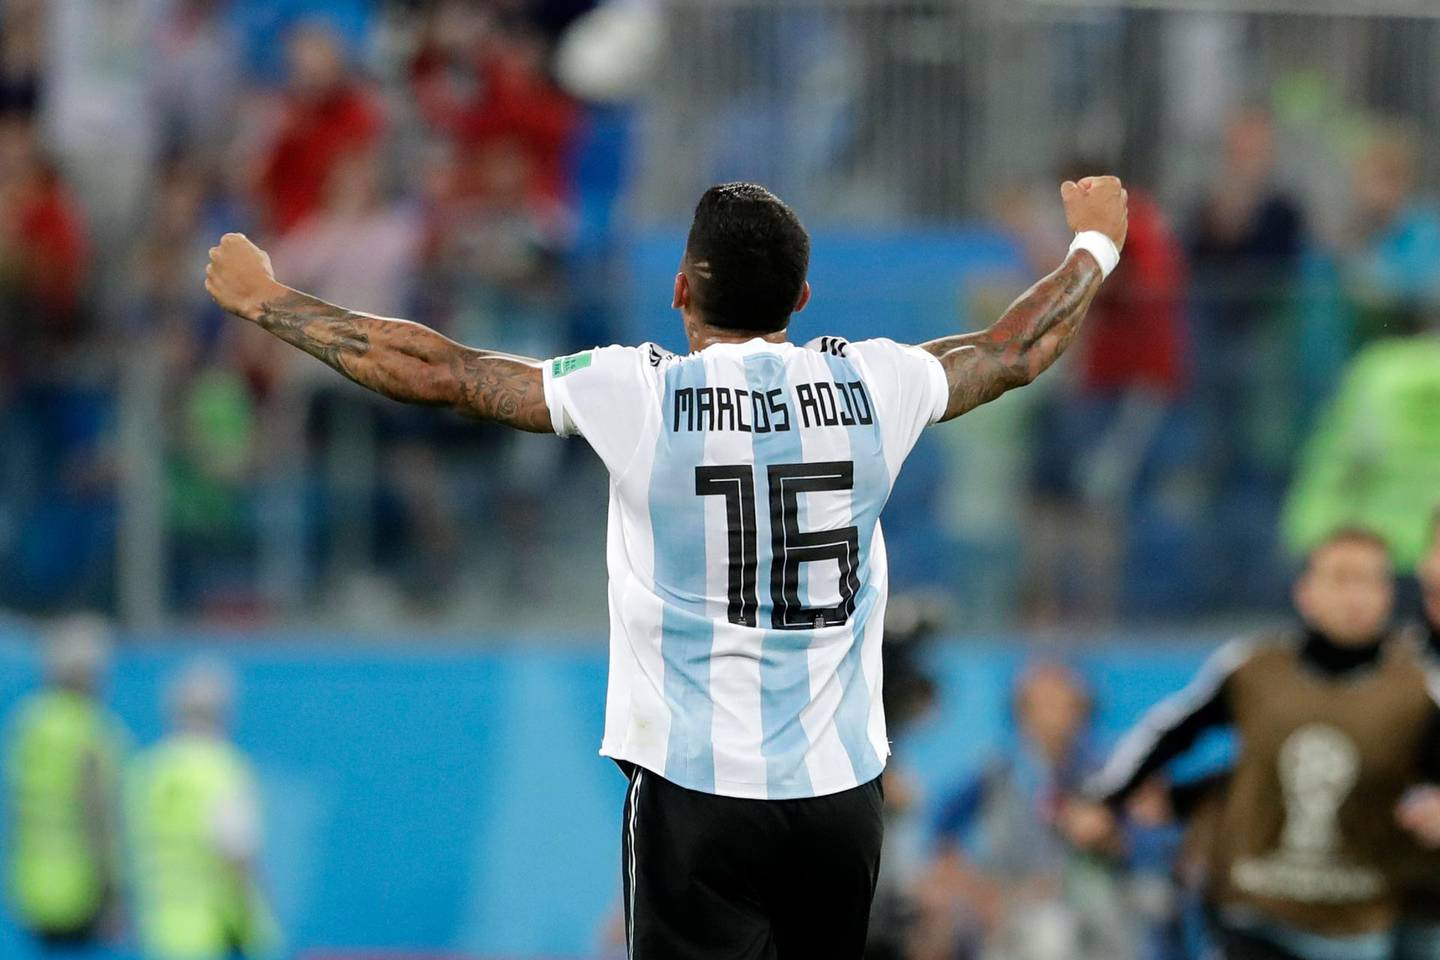 Argentina's Marcos Rojo, scorer of the second goal, reacts after the final whistle of the group D match between Argentina and Nigeria, at the 2018 soccer World Cup in the St. Petersburg Stadium in St. Petersburg, Russia, Tuesday, June 26, 2018. Argentina won 2-1. (AP Photo/Petr David Josek)